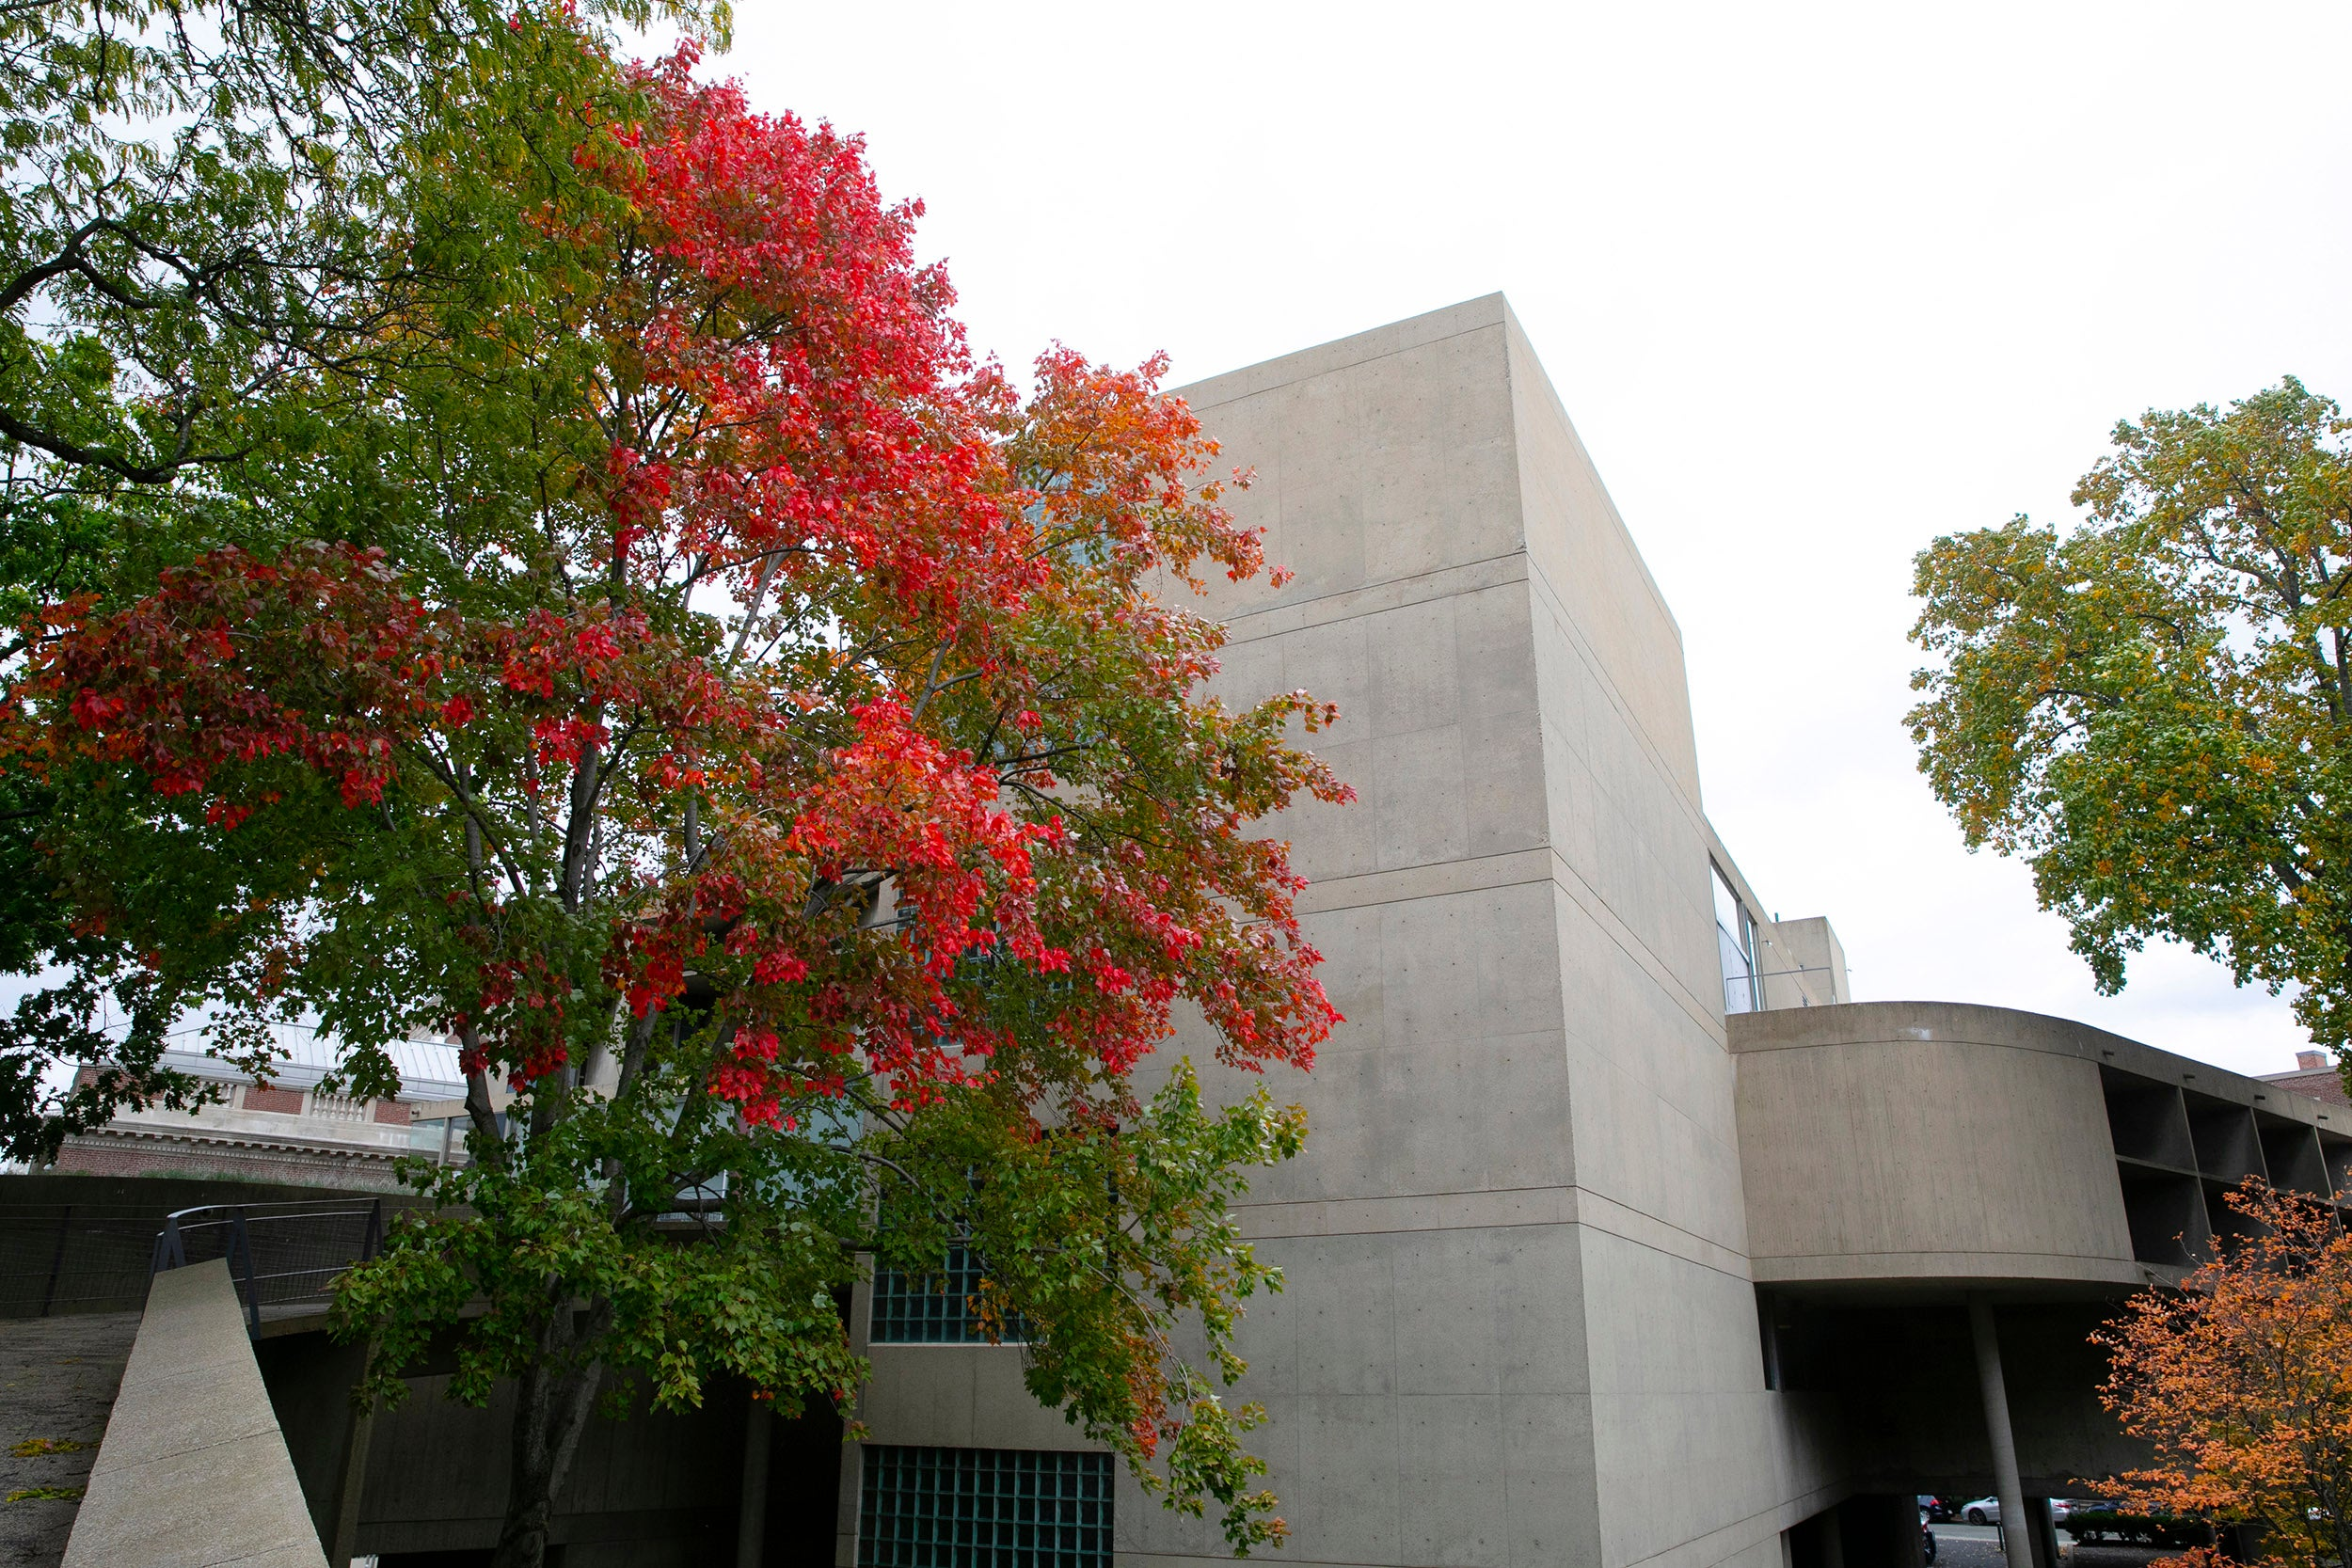 Autumn leaves are on display outside the Carpenter Center.